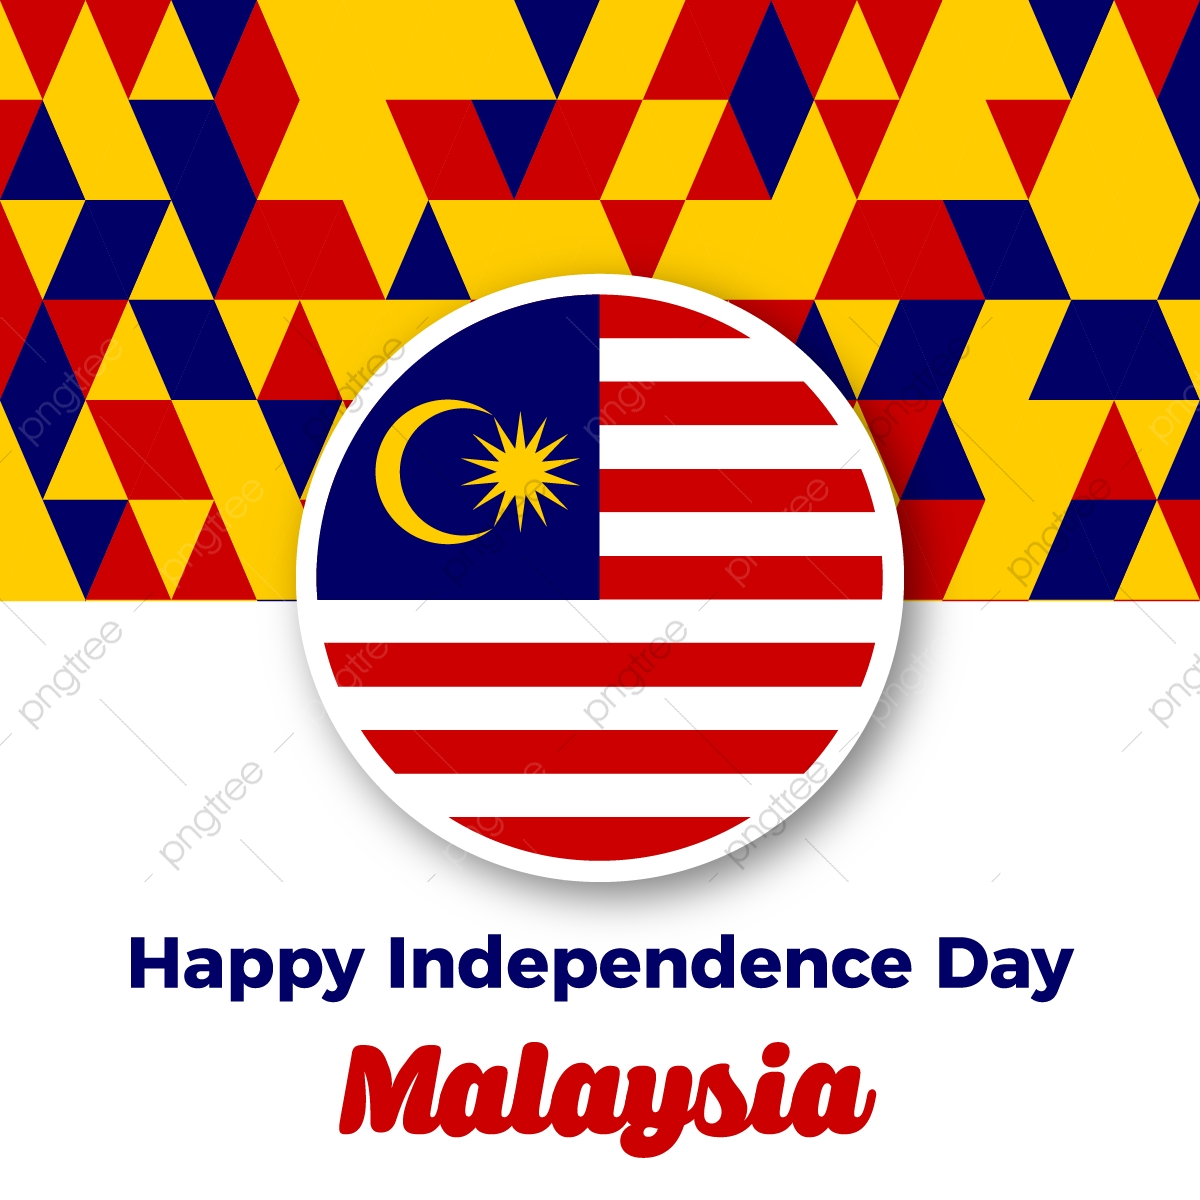 Malaysia Independence Day With Malsian Color Triangle Pattern Background Malaysia Merdeka Day Malaysia Independence Day Malaysia Freedom Png And Vector With Transparent Background For Free Download